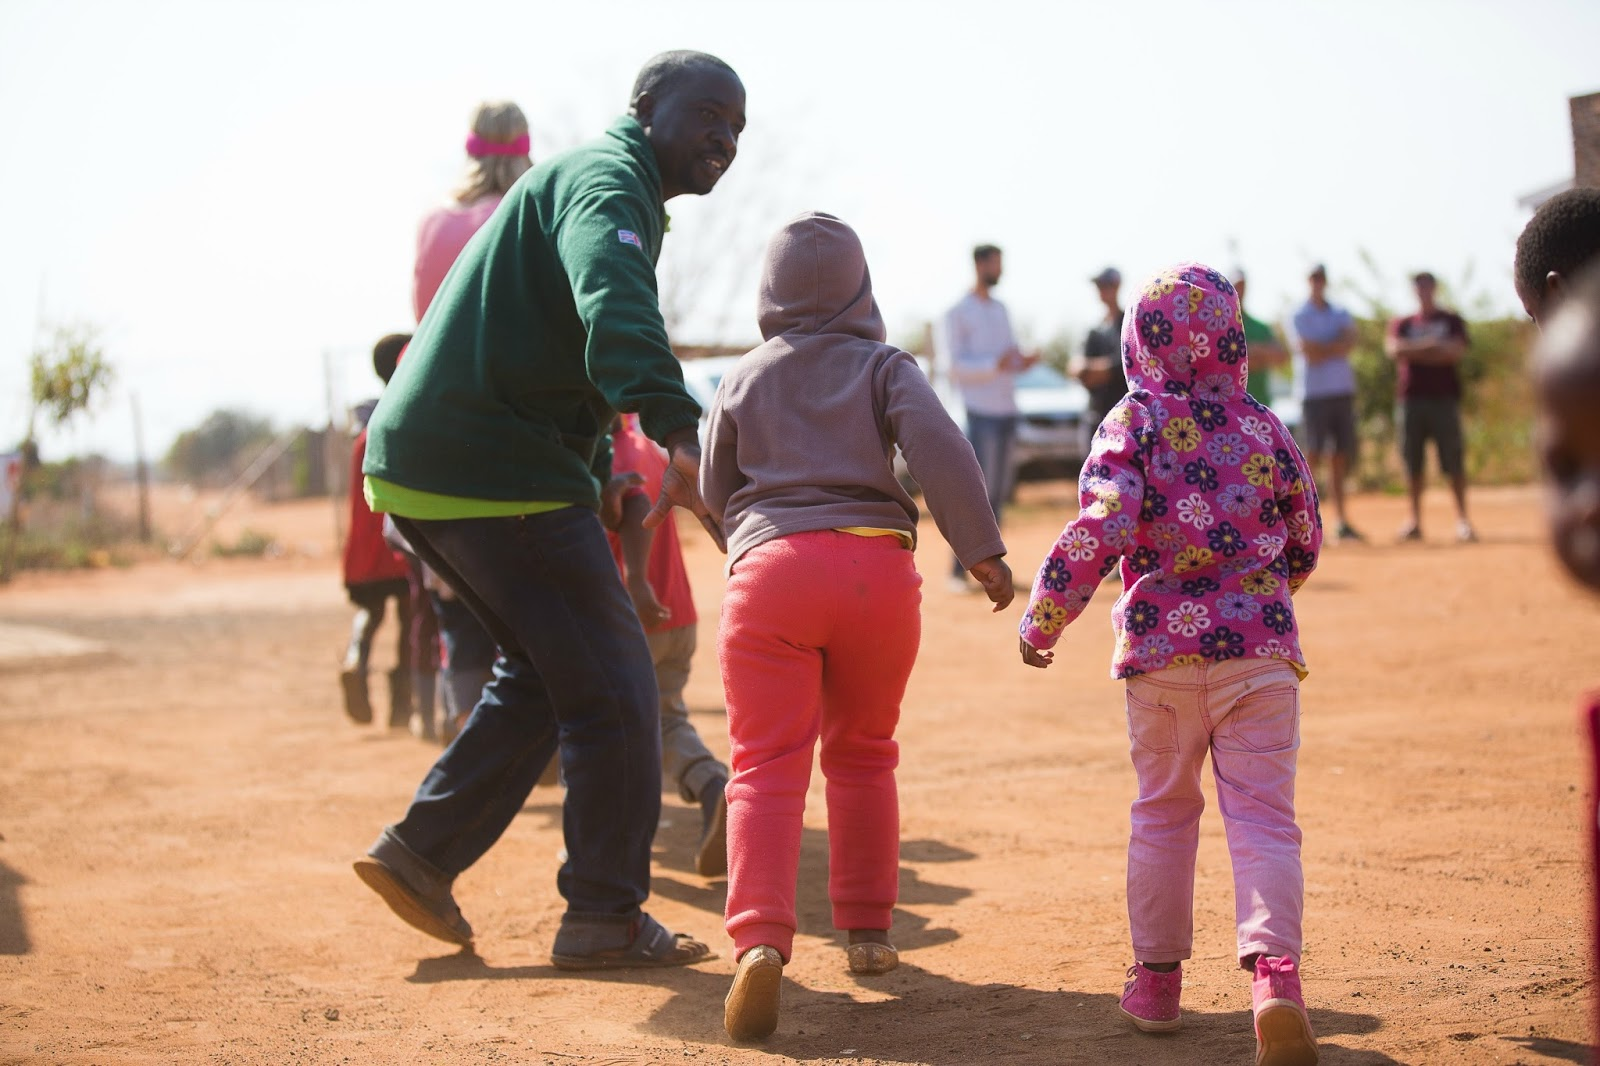 Pastor Norman lives in a community called Maubane, South Africa. It is ...